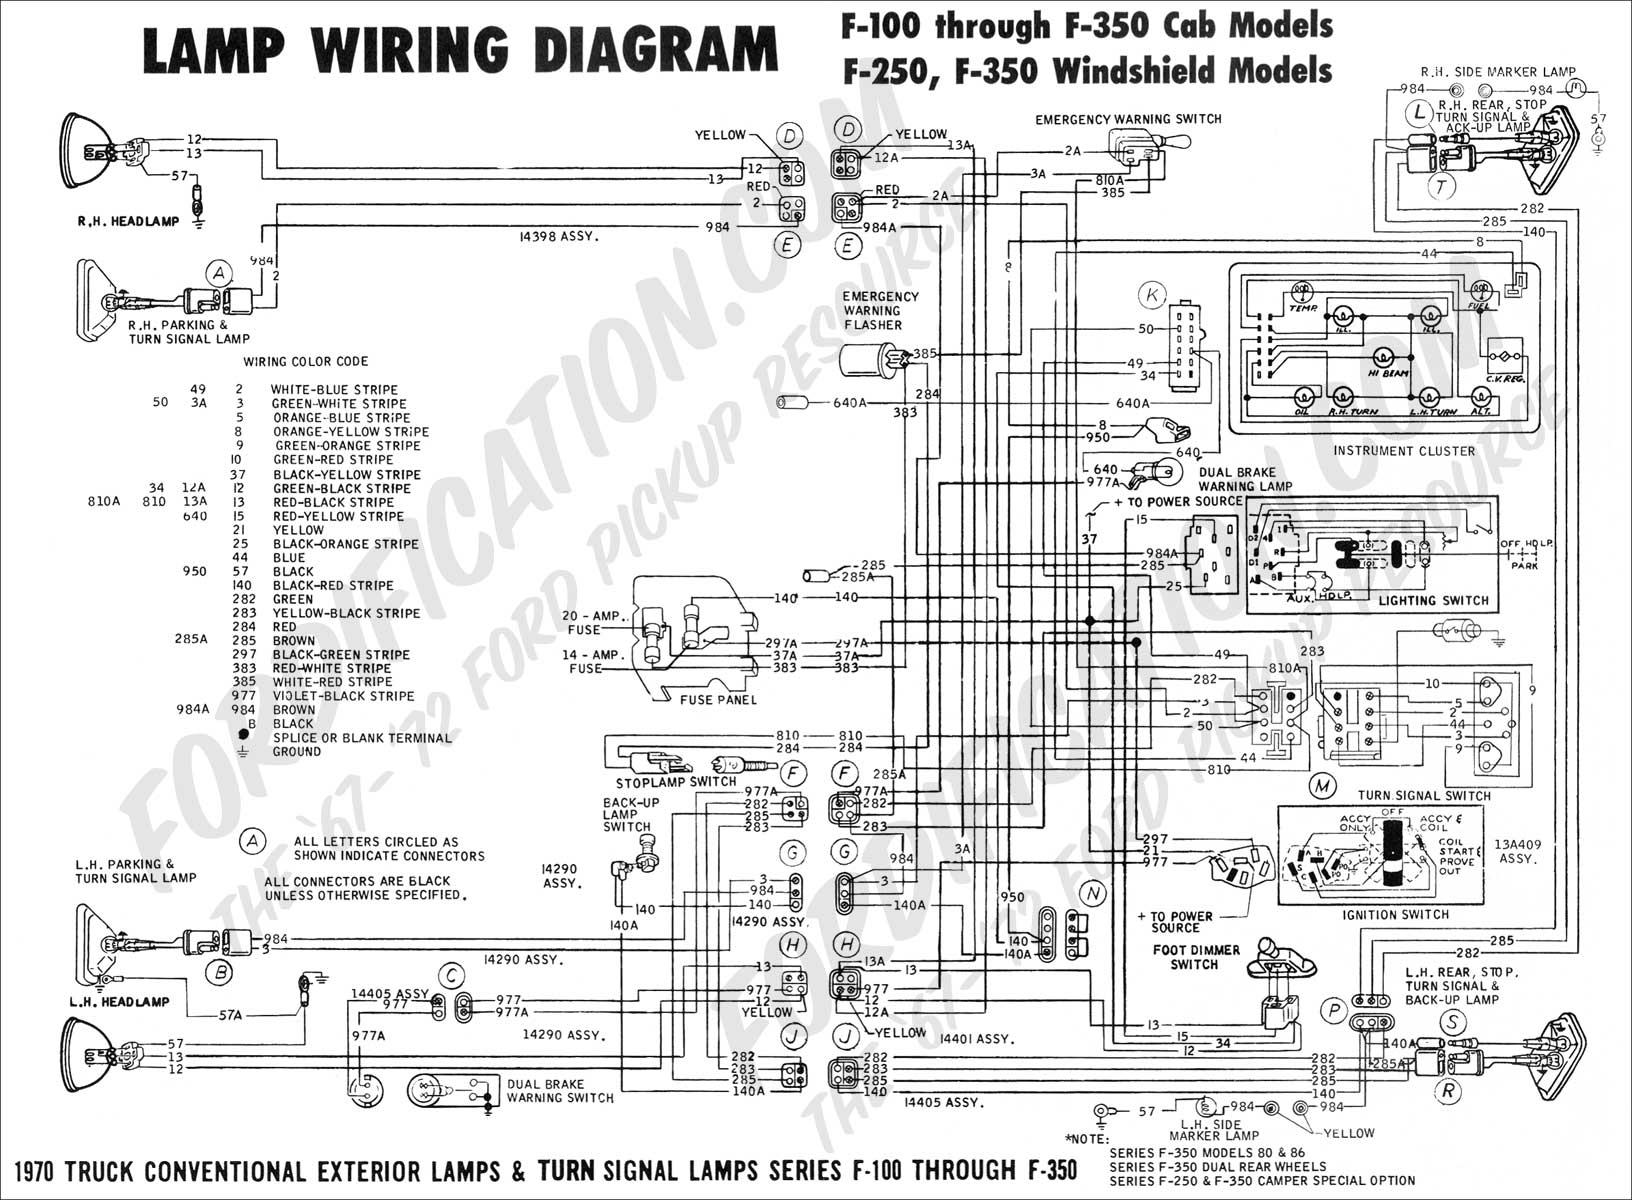 1999 Ford Explorer Starter Wiring Diagram 41 Images 70ext Lights01resized6652c489 1993